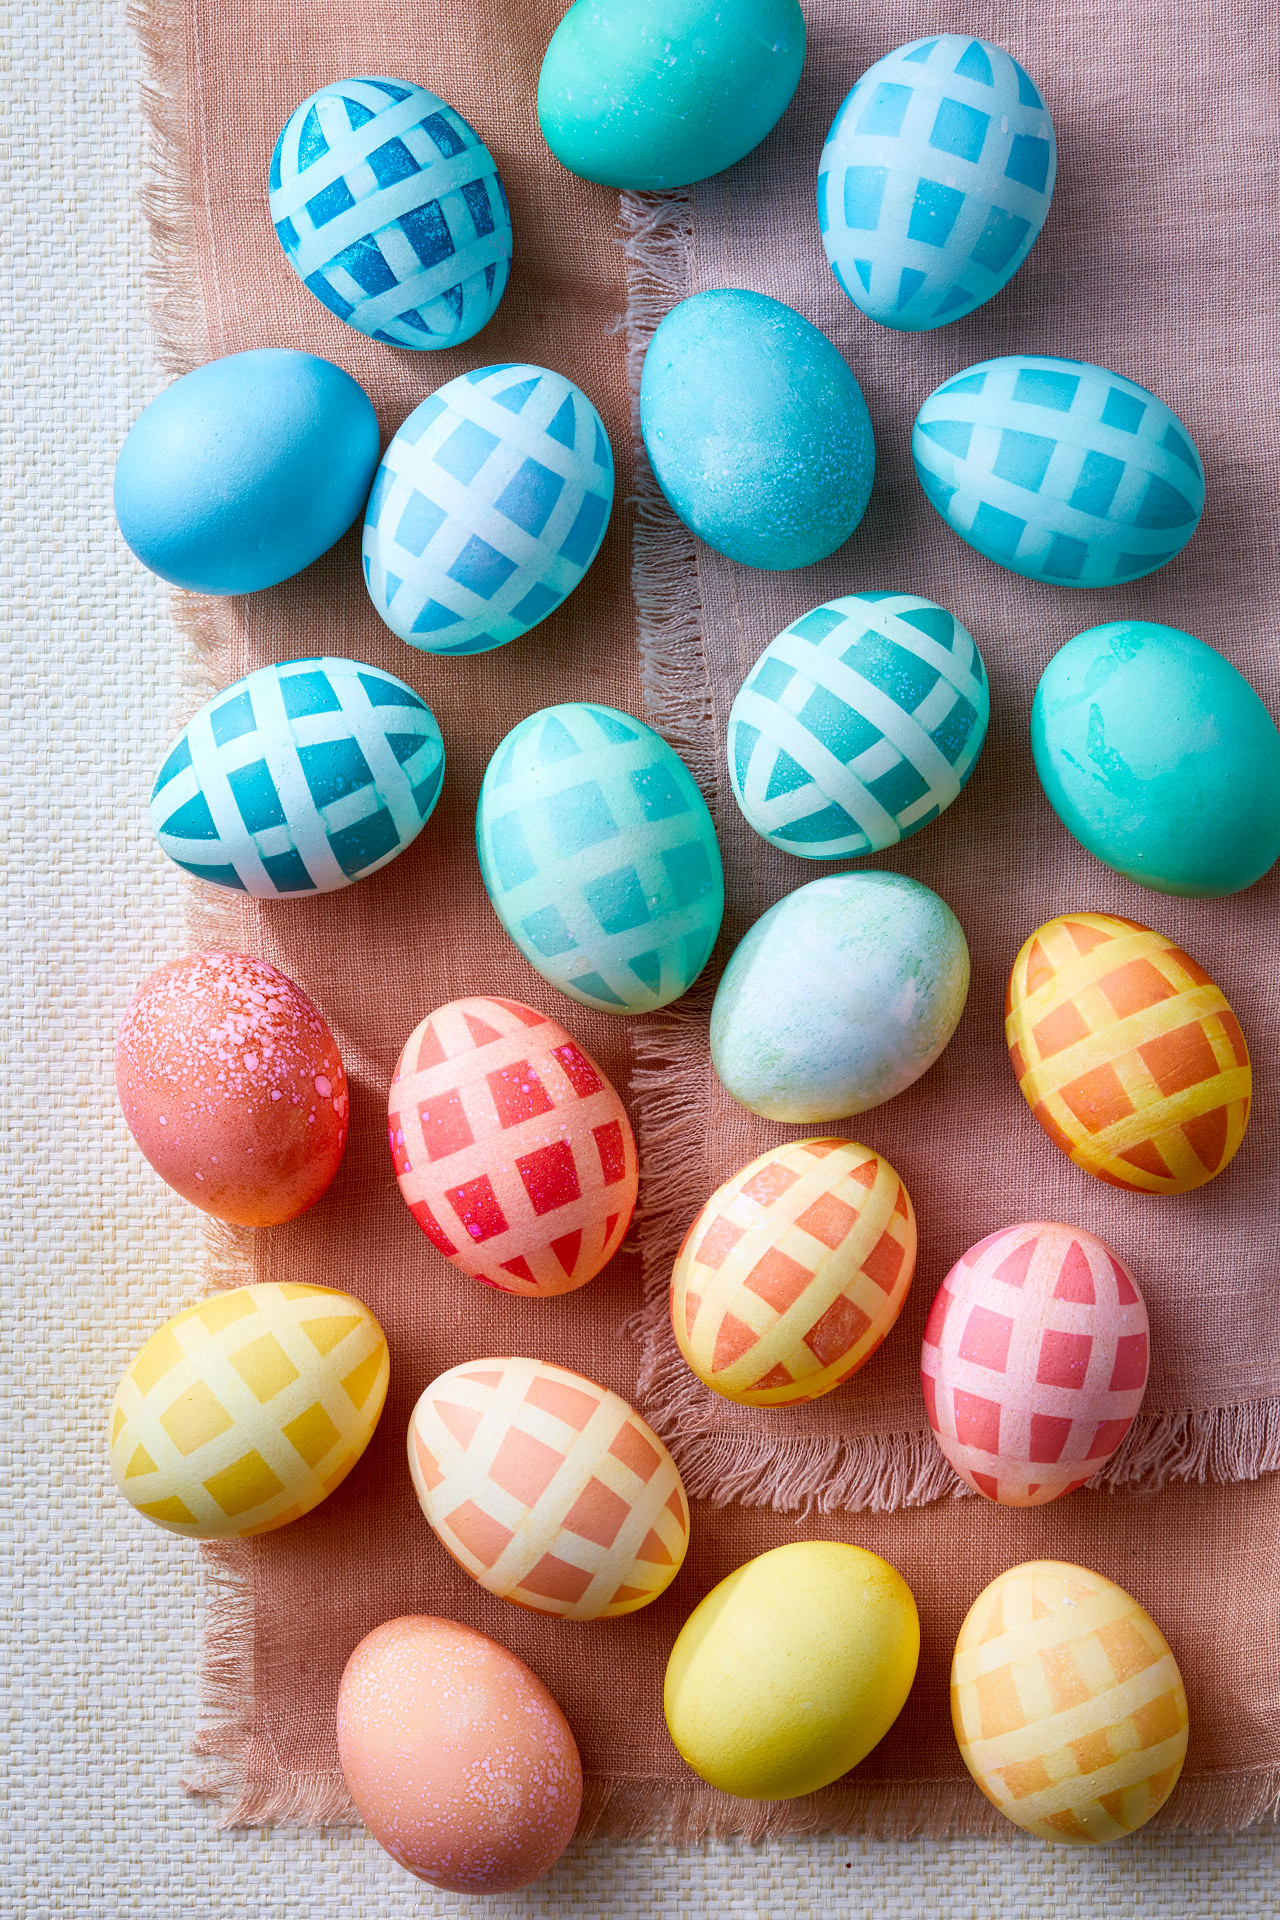 dyed easter eggs checkered pattern